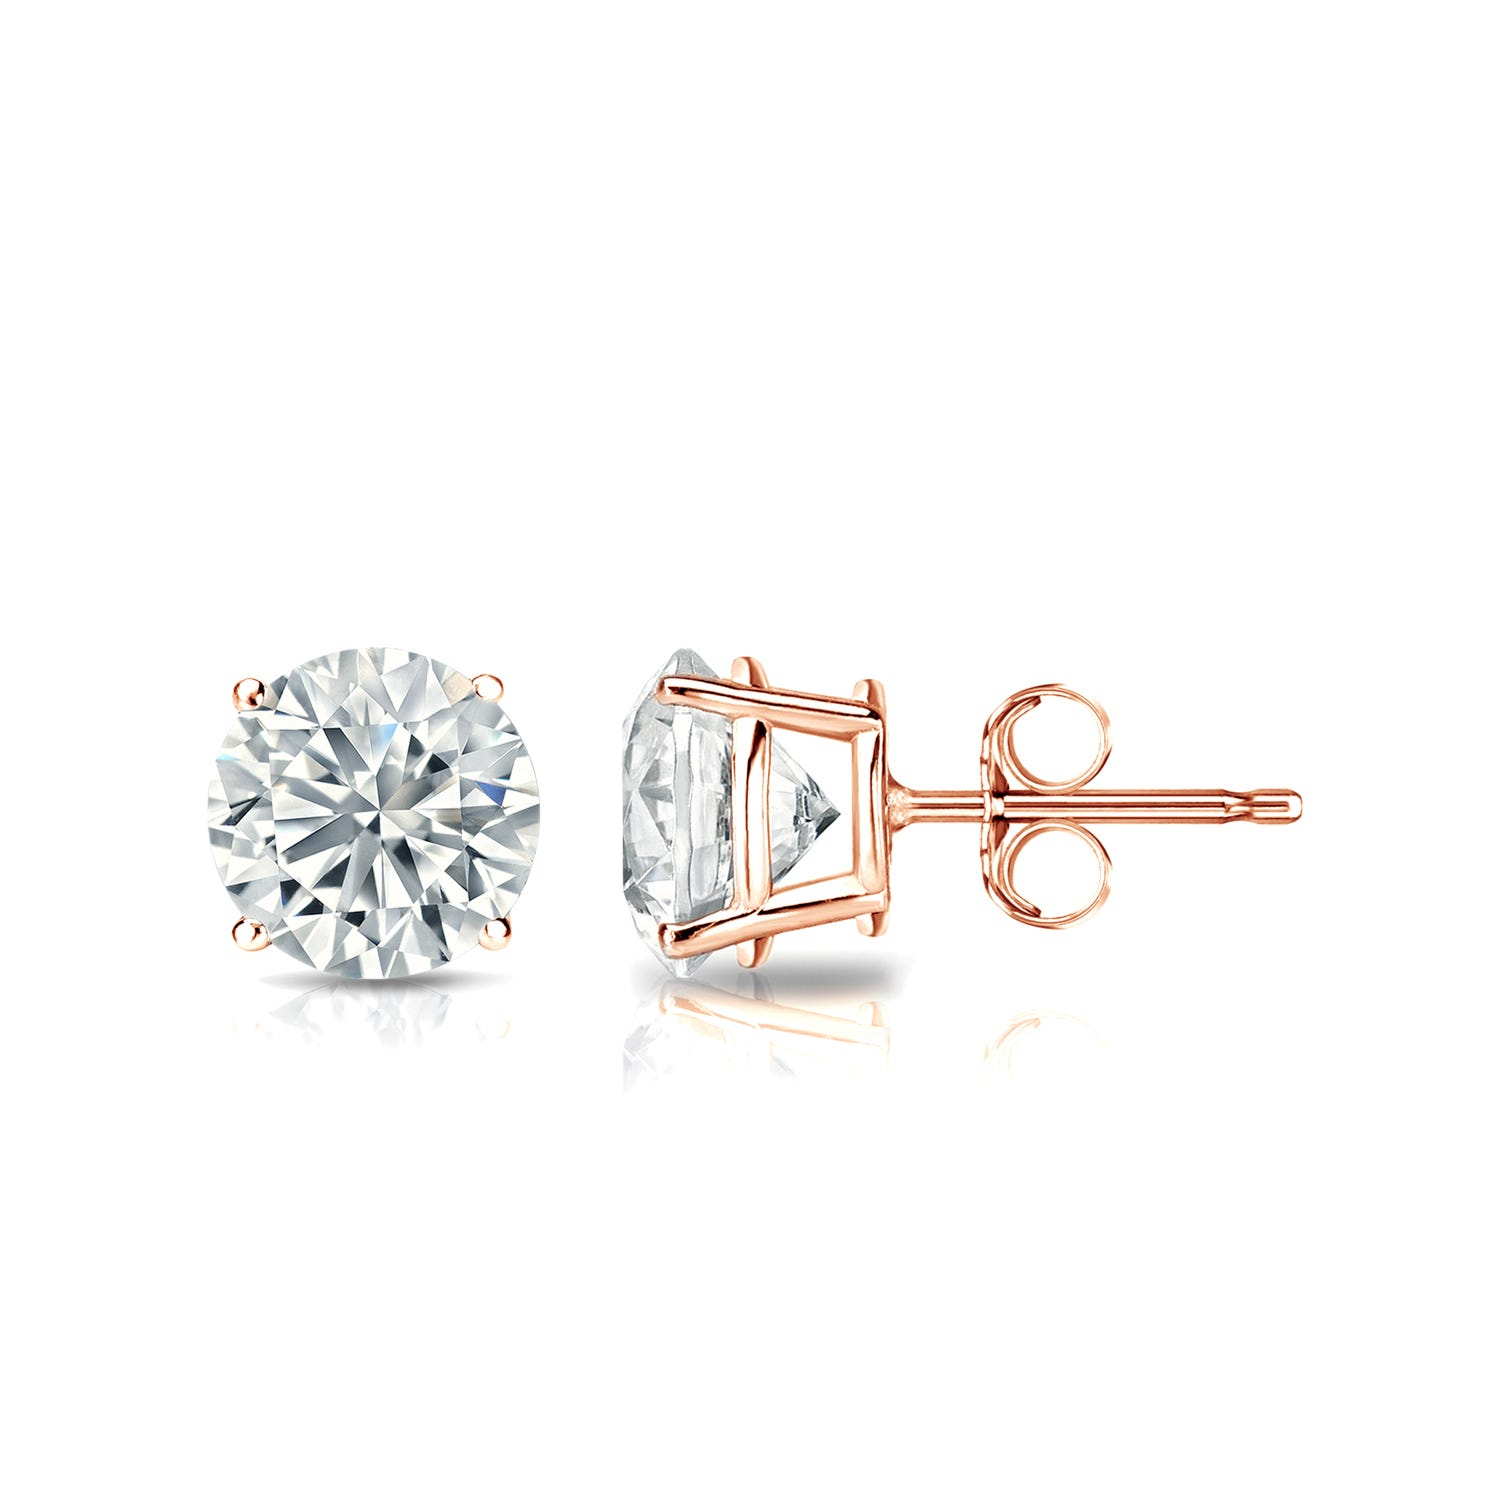 Diamond 1ctw. Round Solitaire Stud Earrings (I-J, SI1) 14k Rose Gold